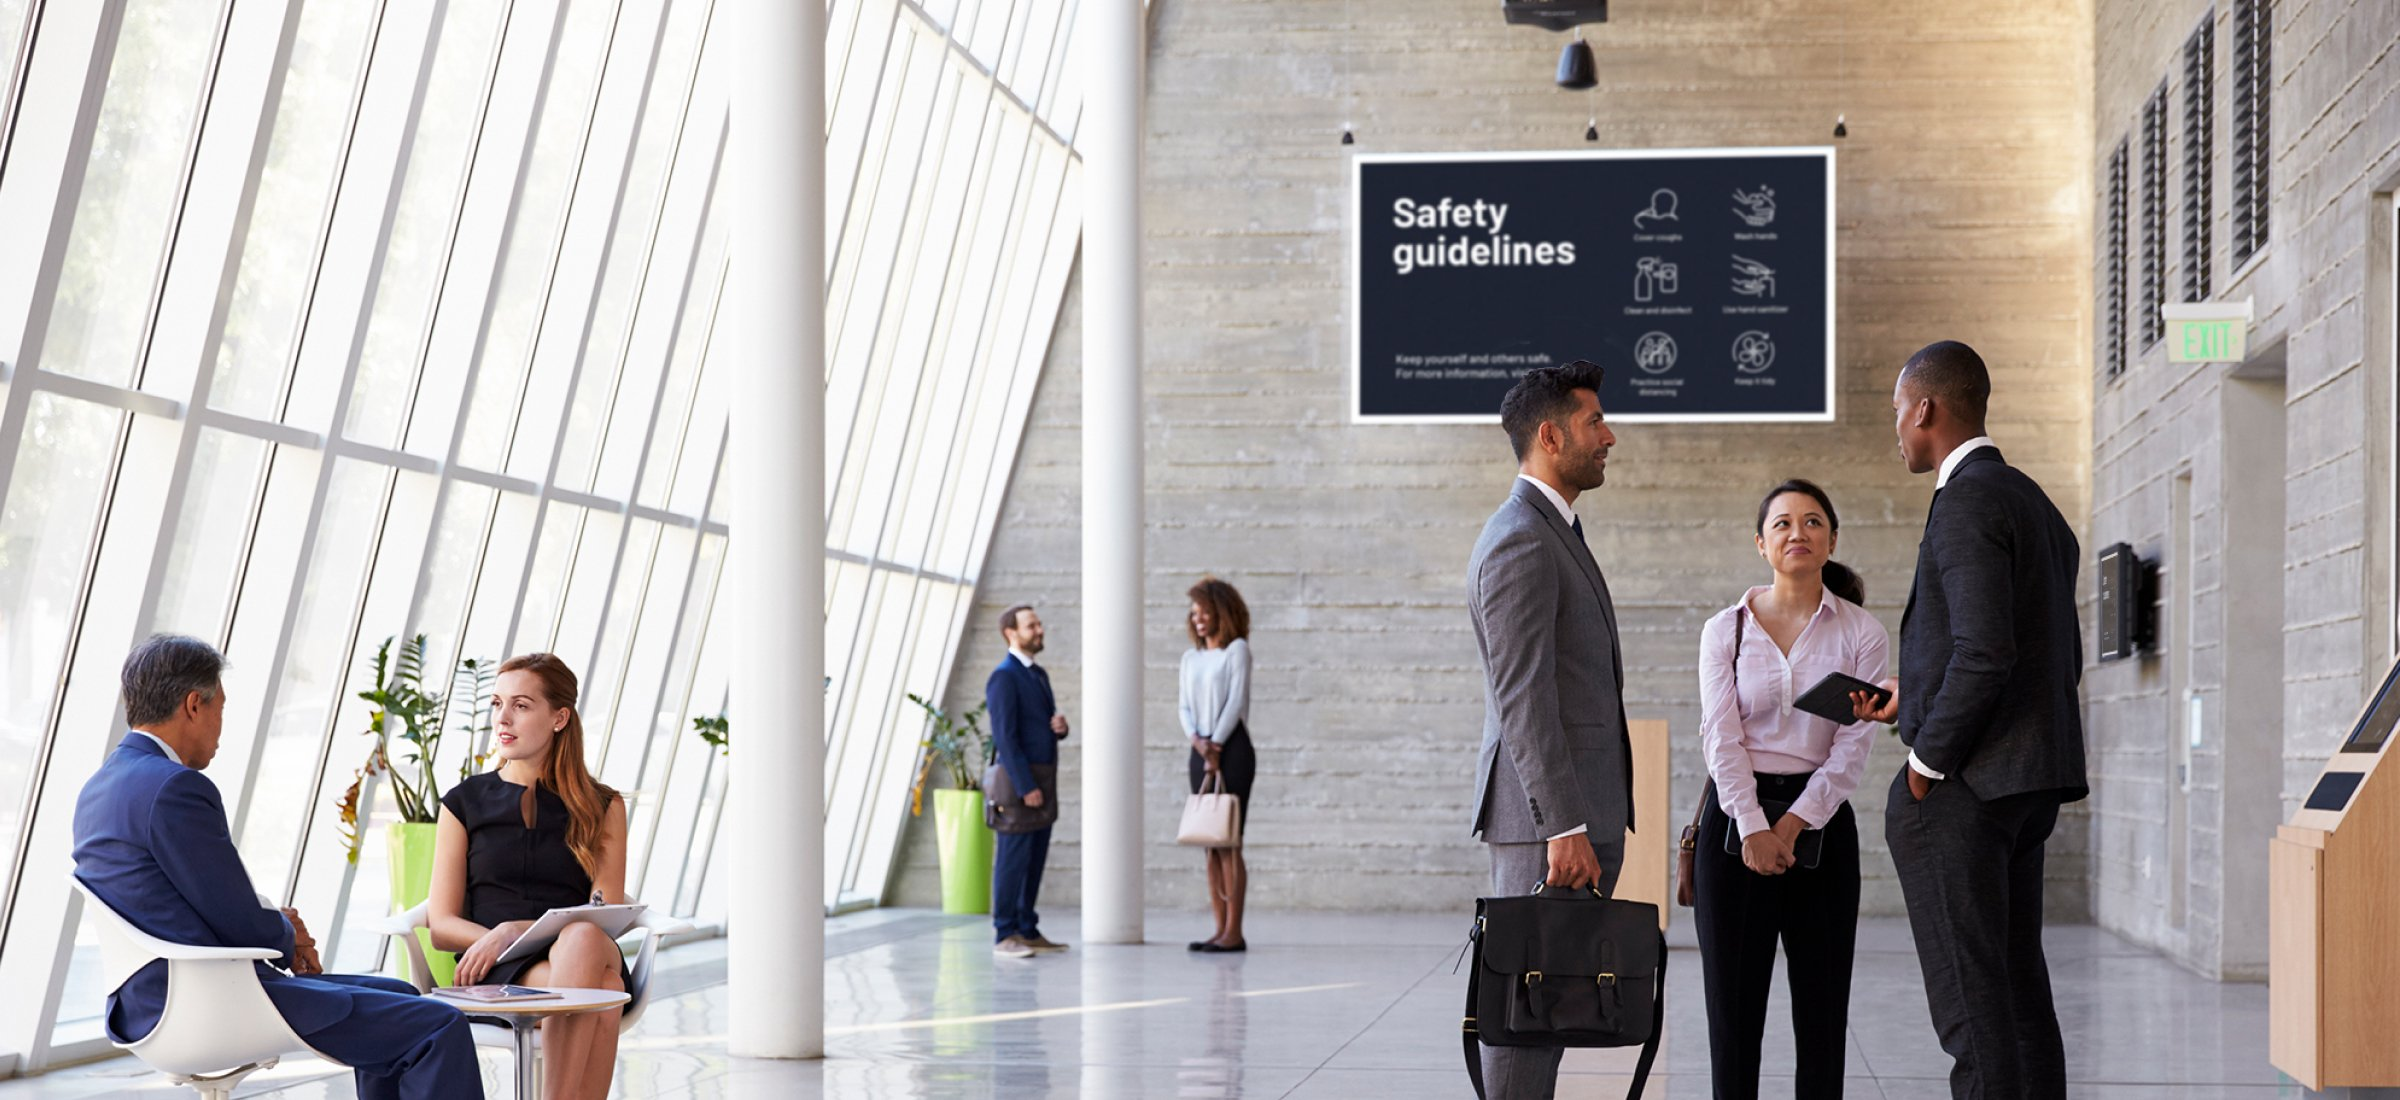 How digital signage can promote safety and awareness in shared spaces at work